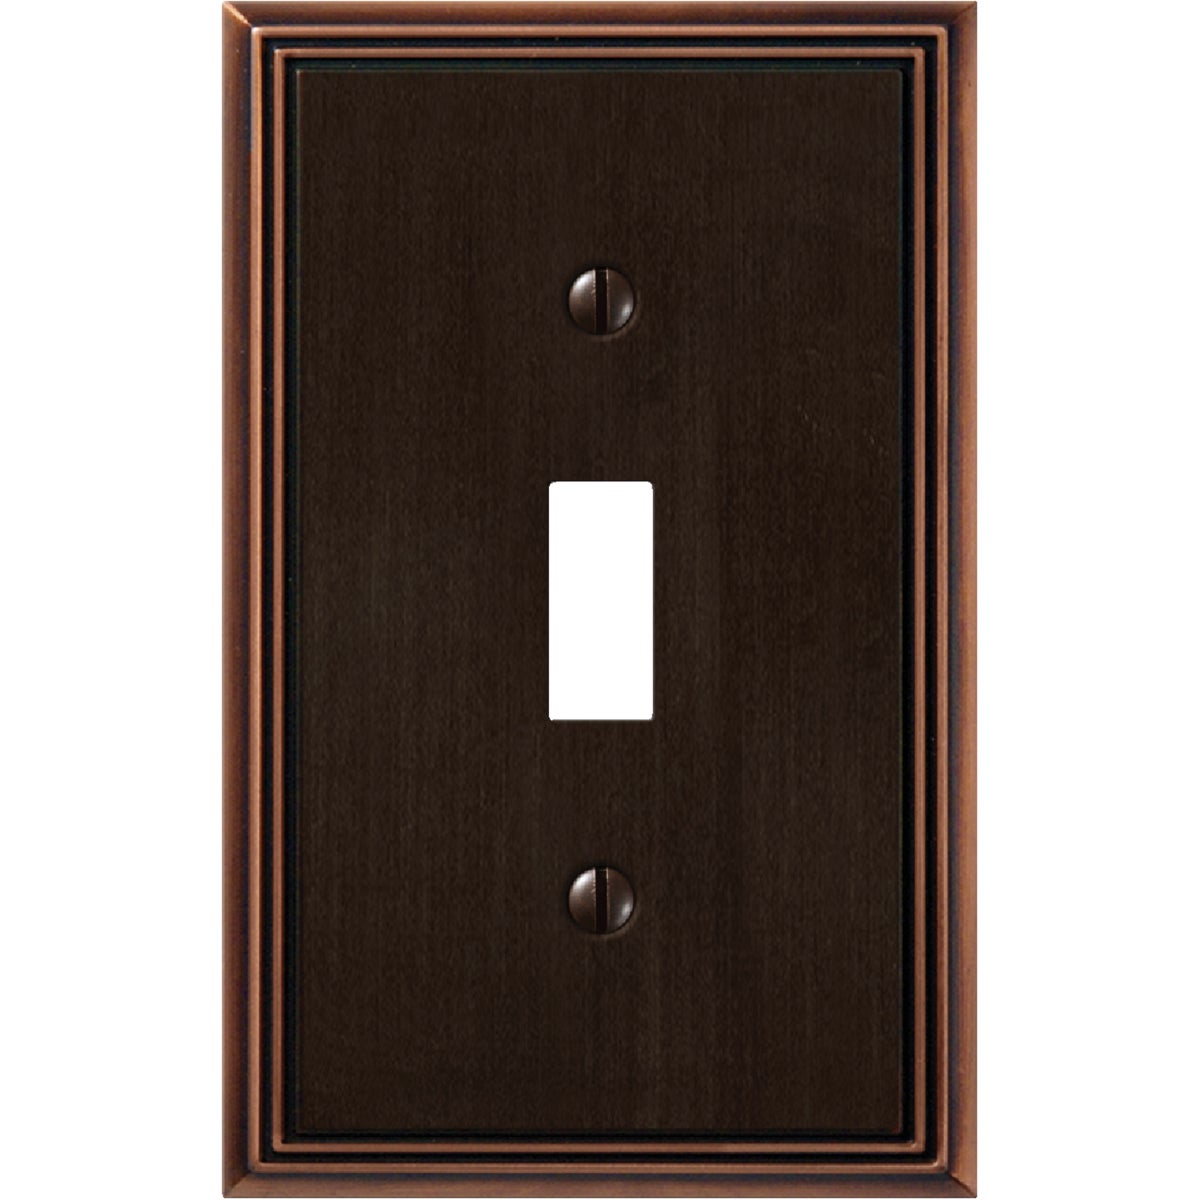 AB 1-TOGGLE WALLPLATE - 3101AZ by Jackson Deerfield Mf